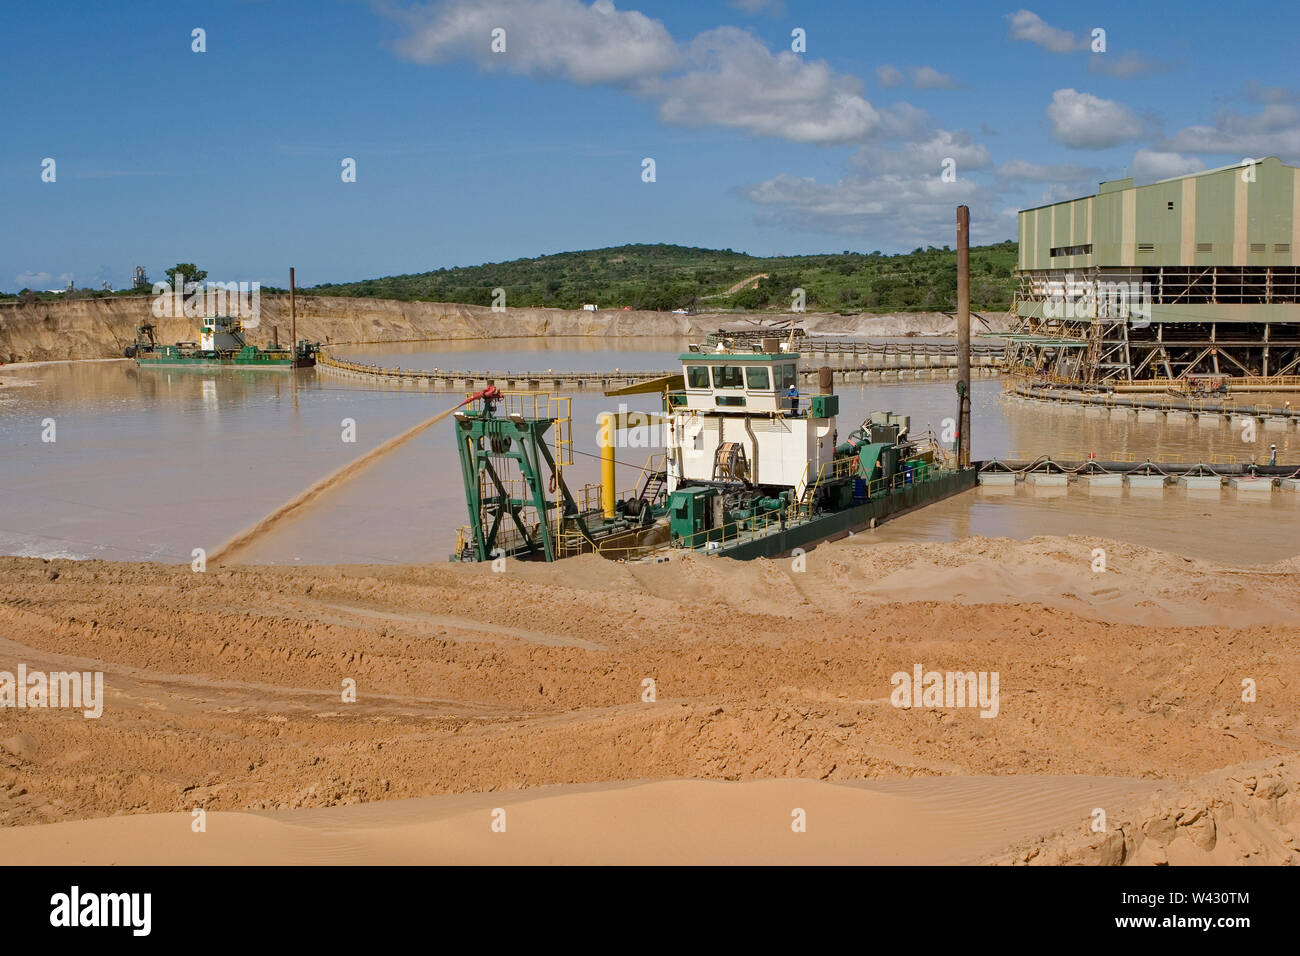 Managing & transporting of titanium mineral sands at mine site. Mining by dredging in freshwater ponds. Dredges pump sand into wet concentrator plant. Stock Photo